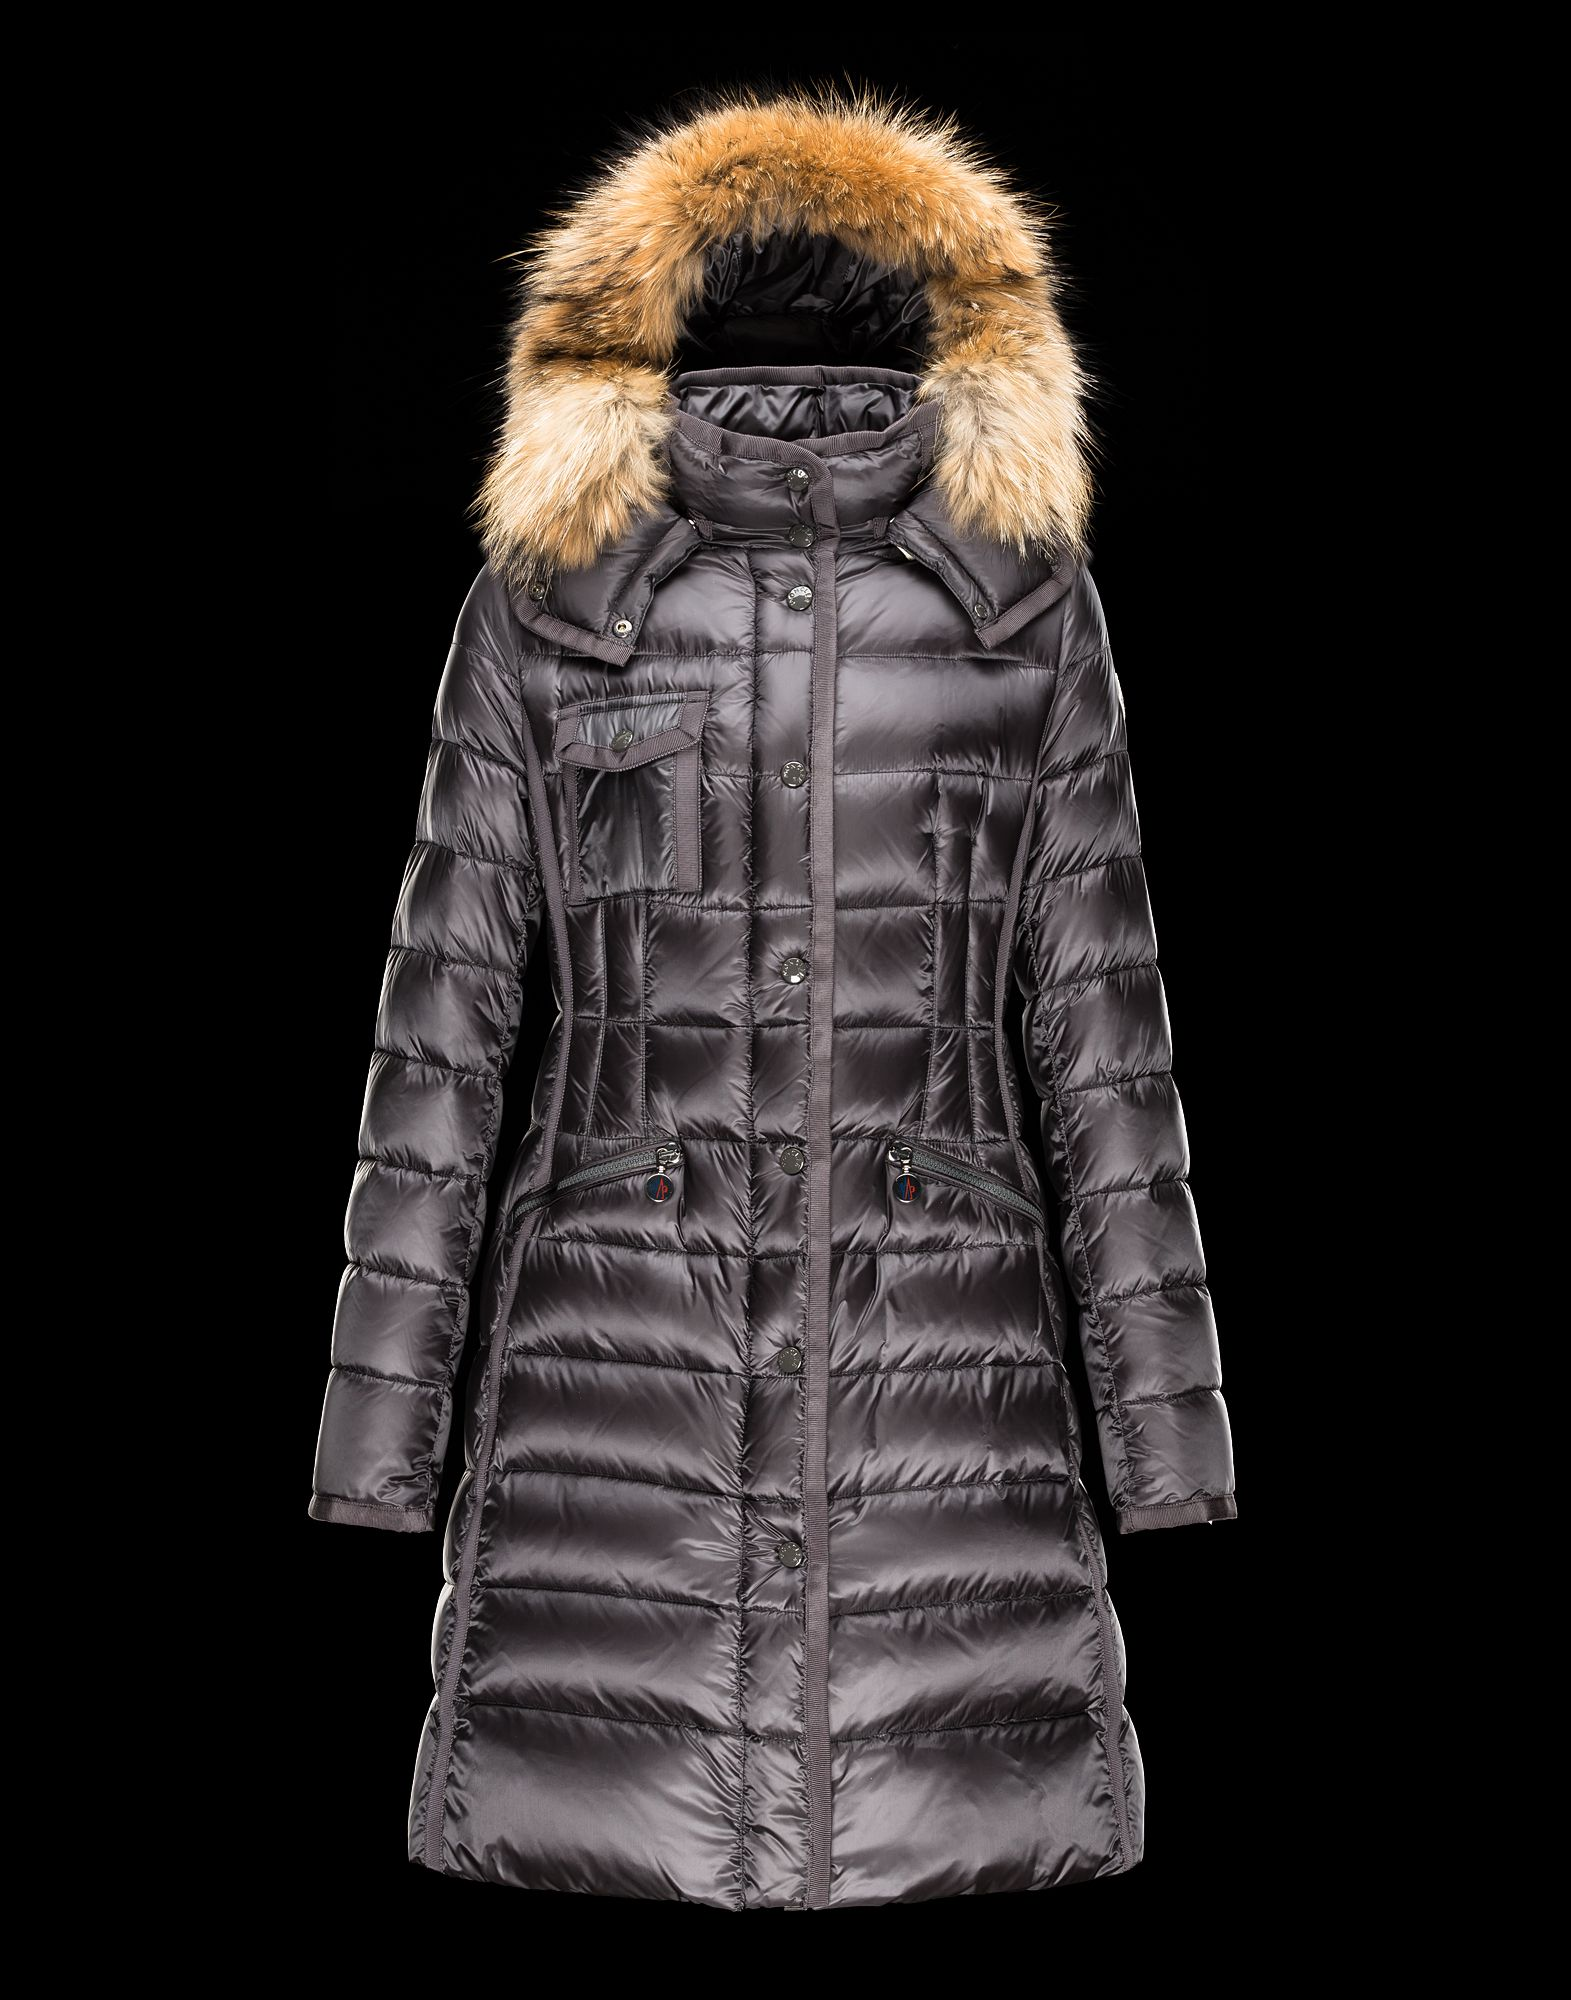 Cheap Moncler Women Coats Long Steel Grey With Fur Collar Removable Cap Sale NA1094